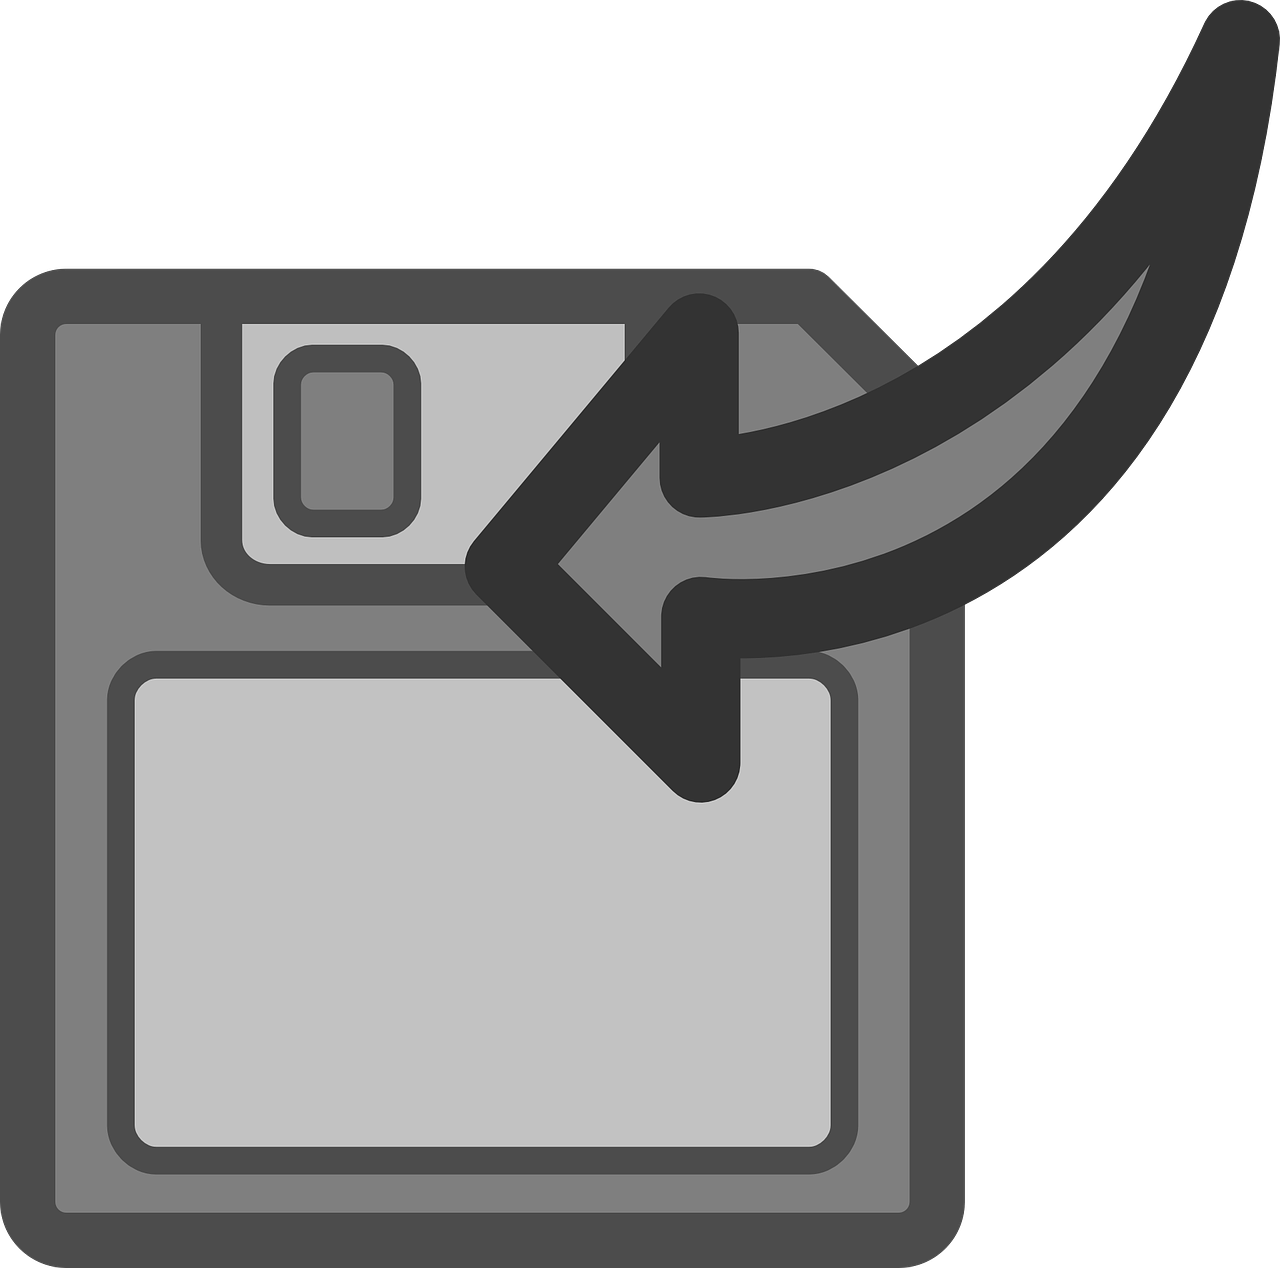 floppy disk save export free photo